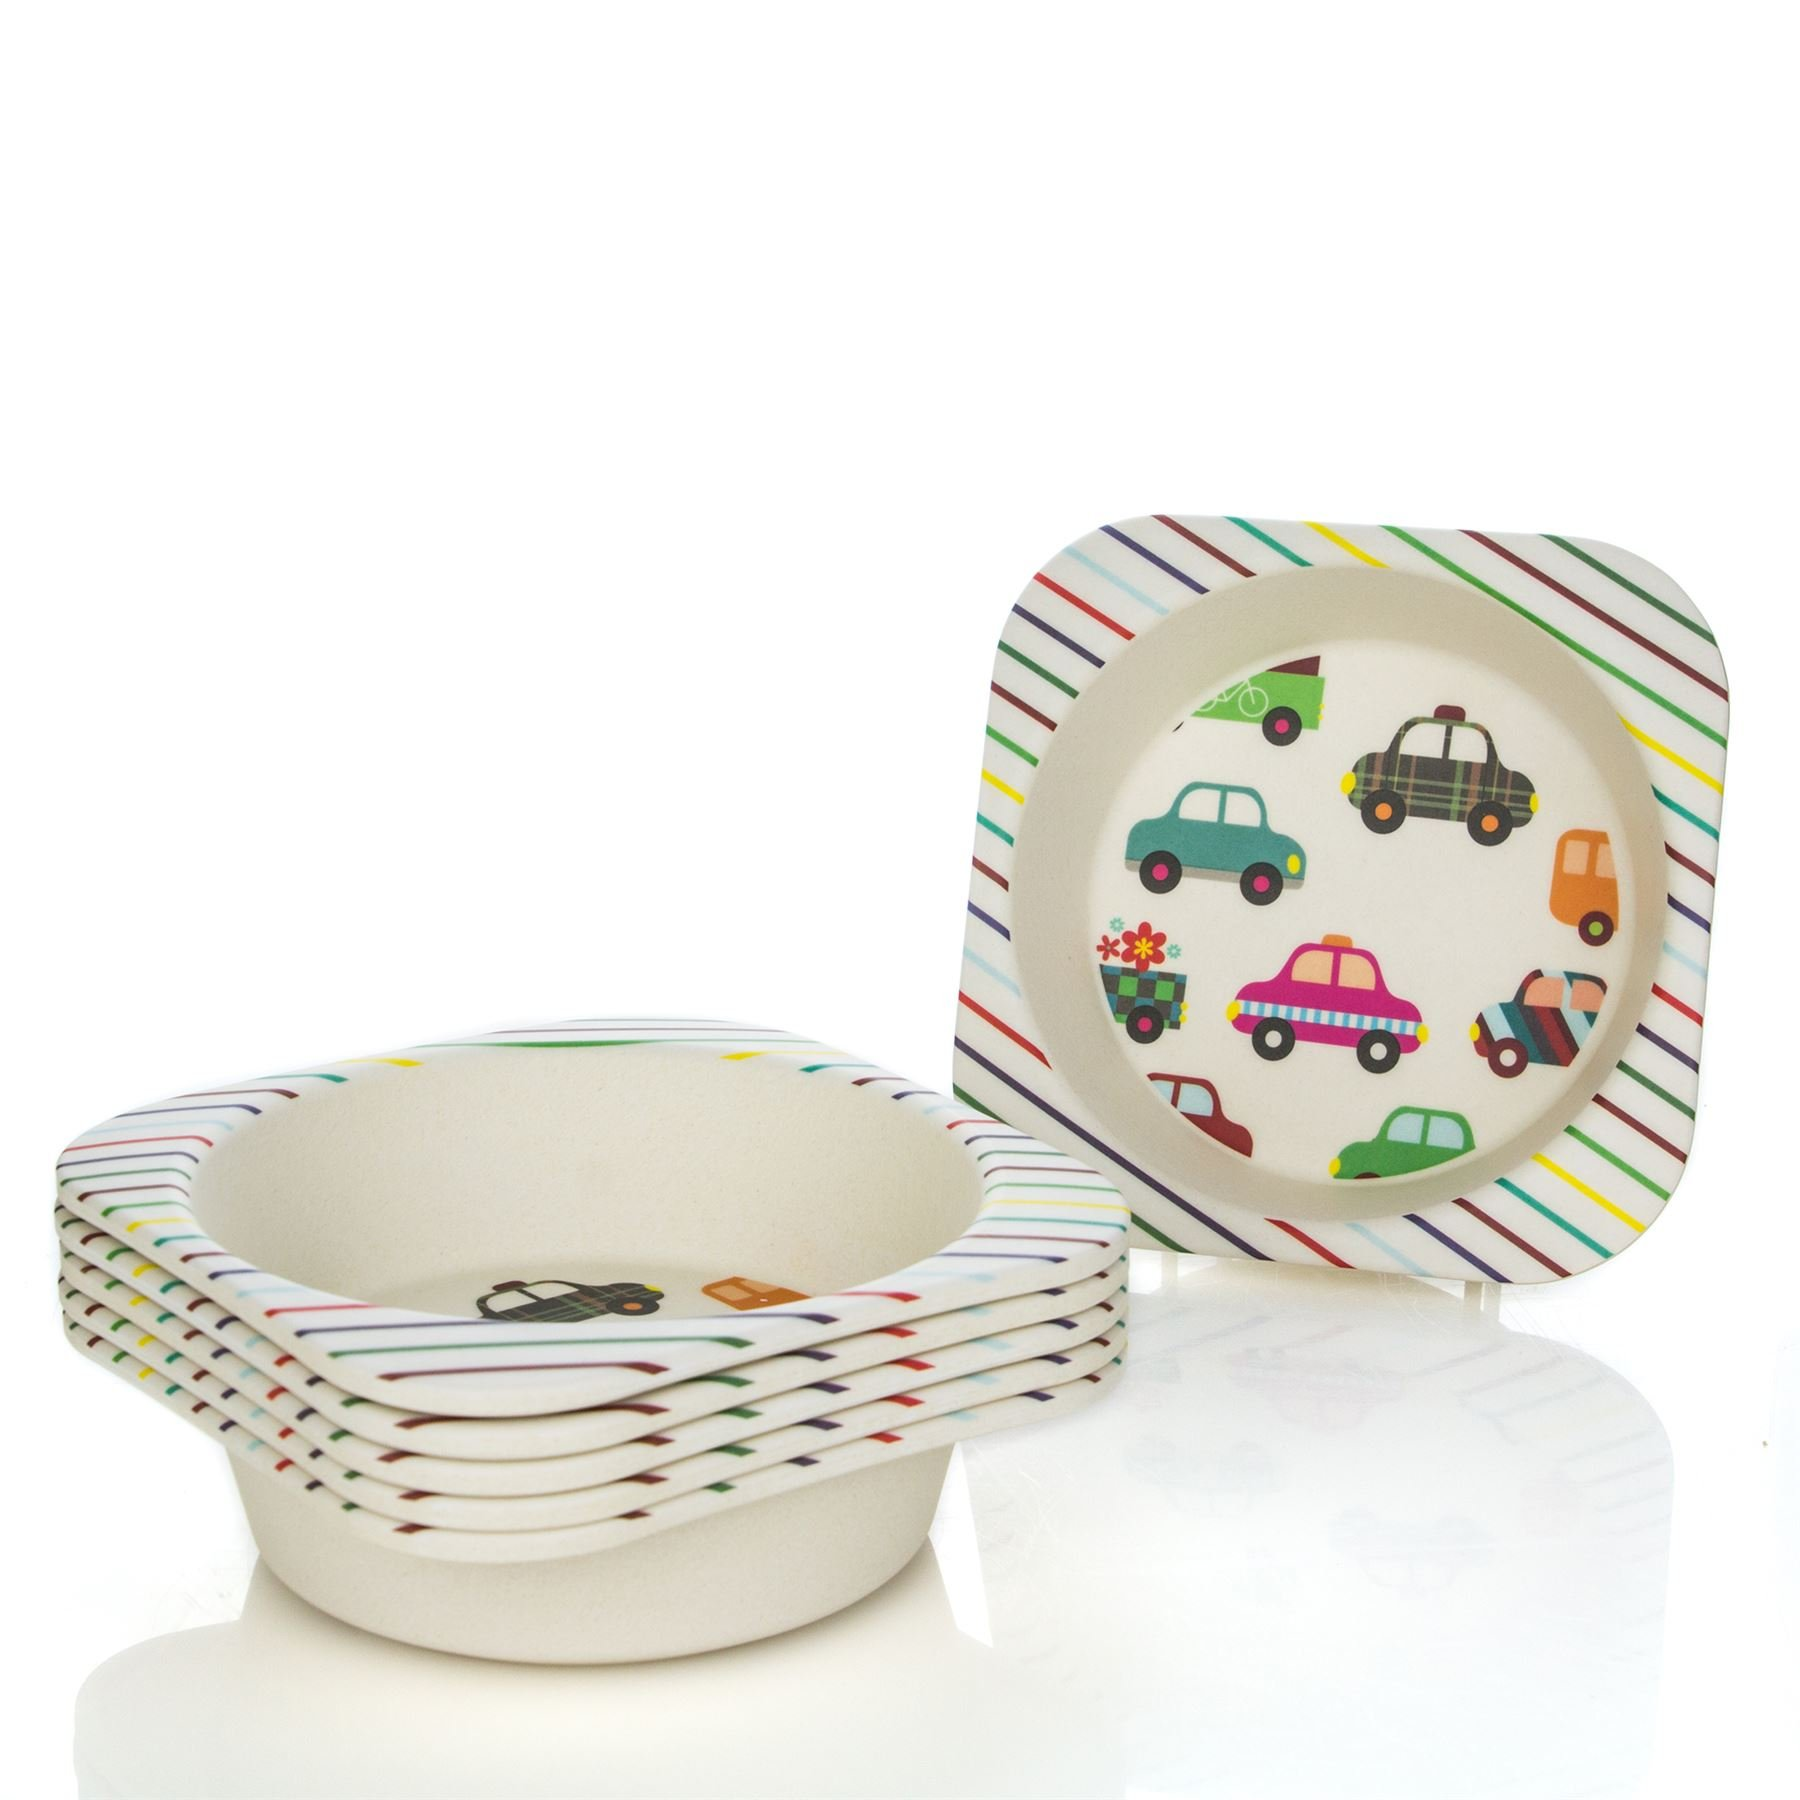 Tiny Dining Children's Bamboo Fibre Dining Bowl - Cars - Pack of 6